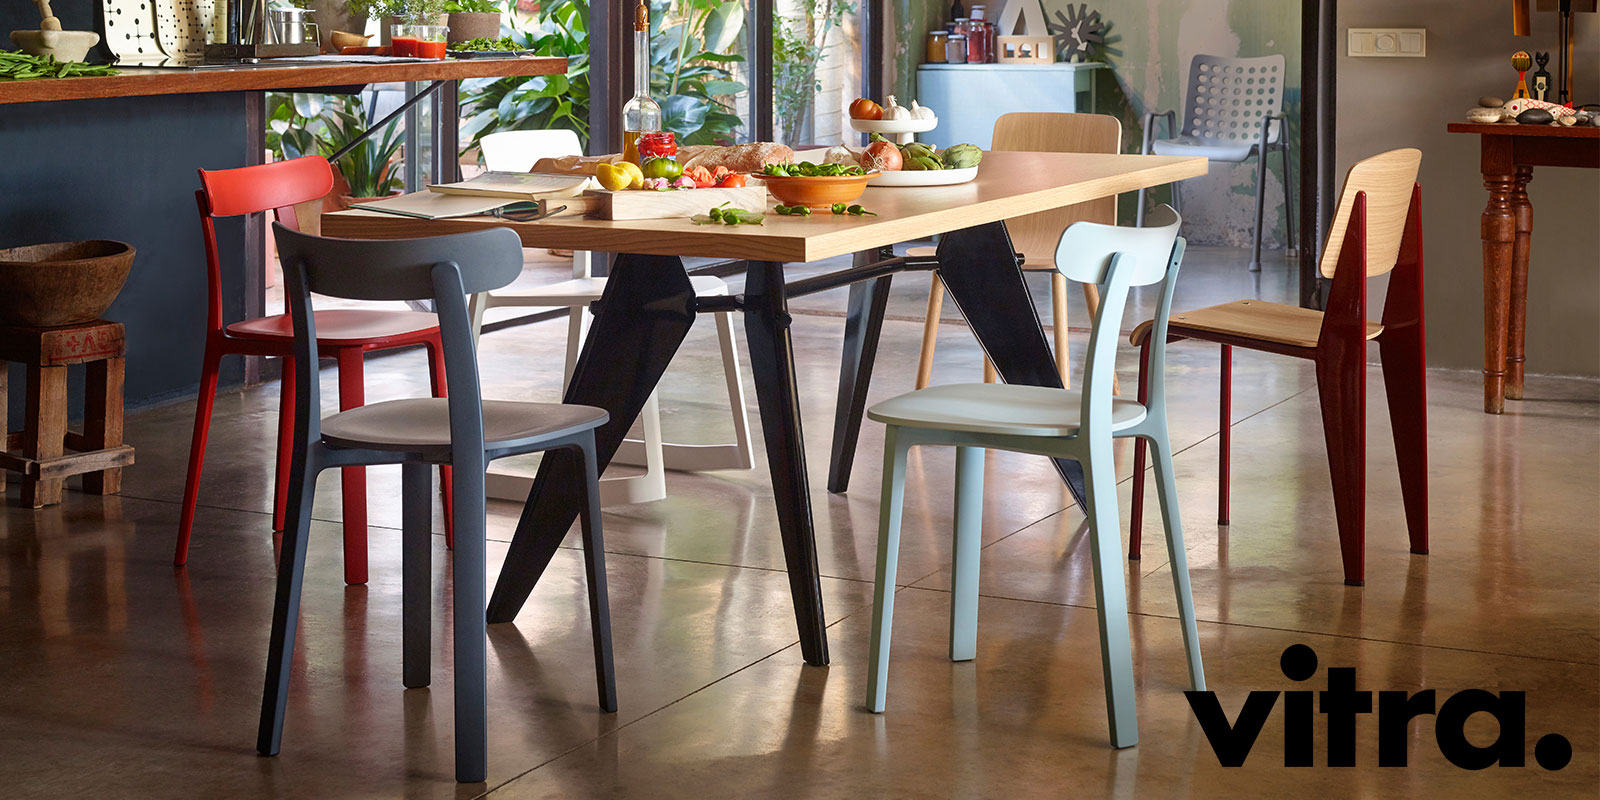 Vitra Prouve Dining Table & Prouve Standard Chair & All Plastic Chair